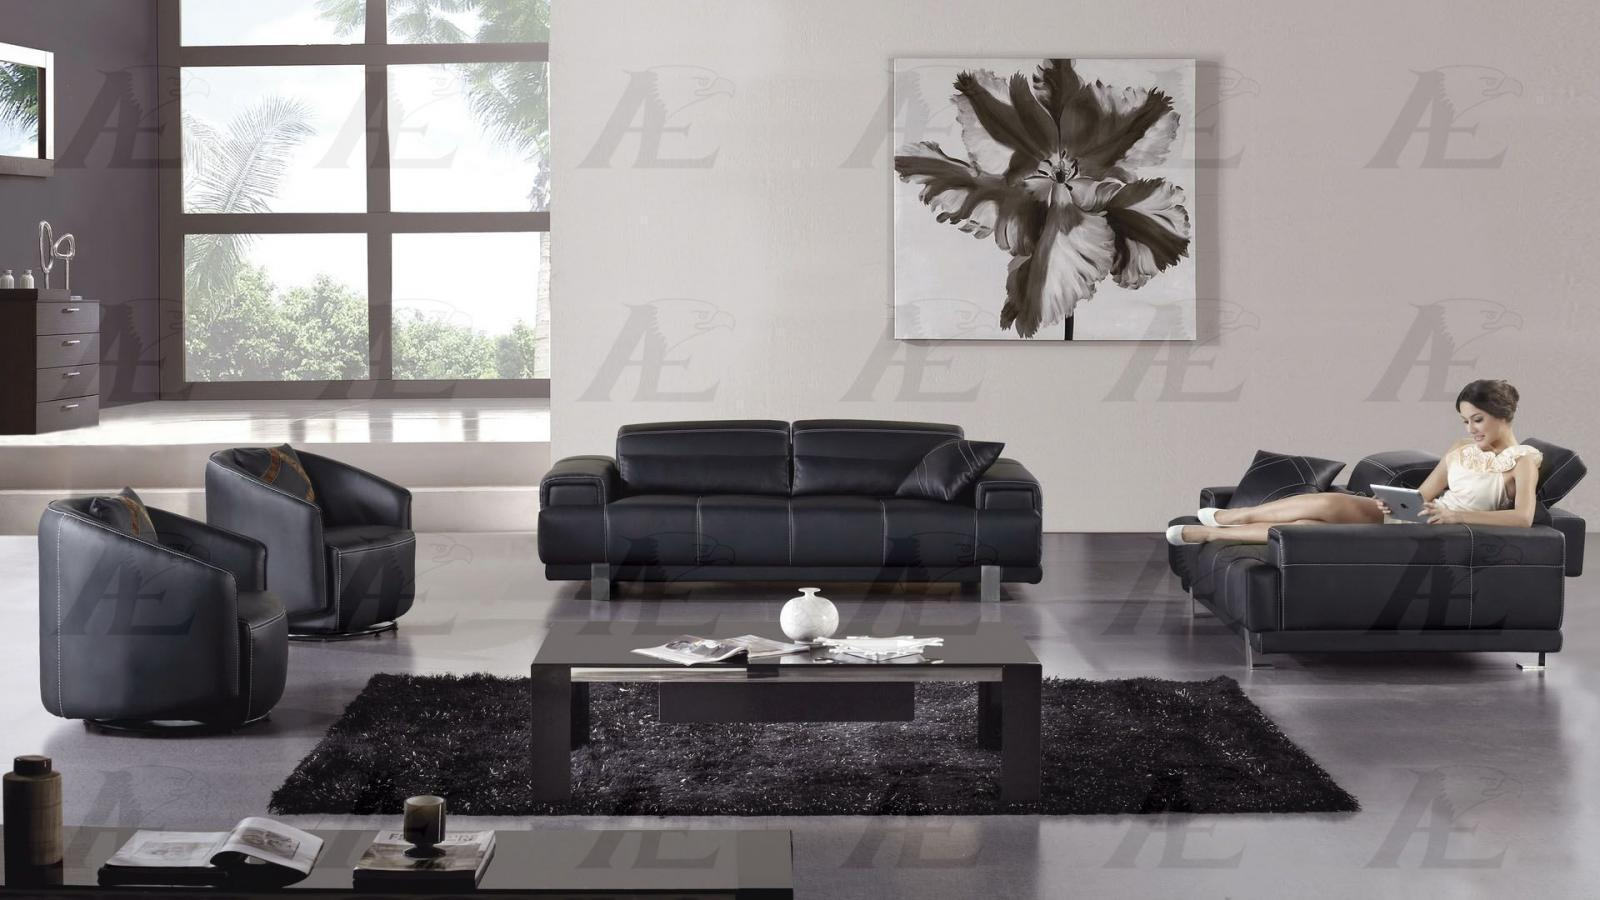 AE606BK Living Room Set Sofa Loveseat Black Leather Modern Contemporary 2pc LooK